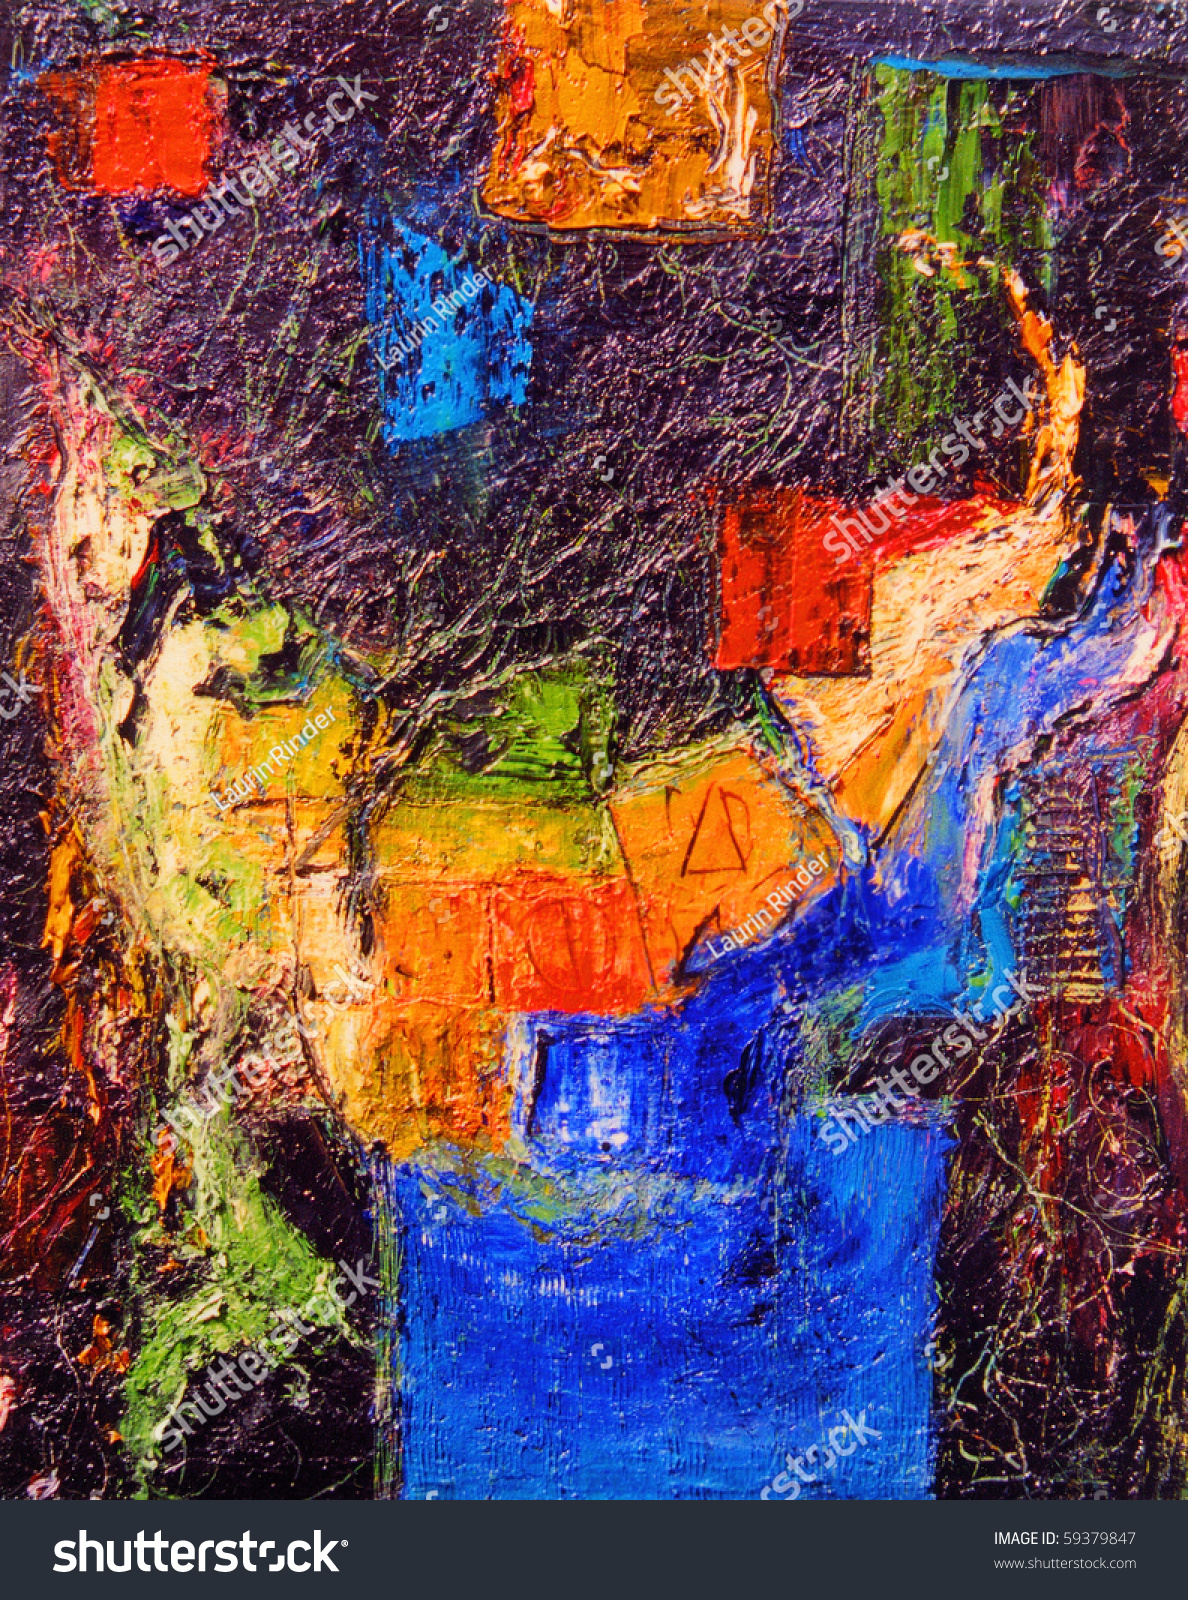 Beautiful Original Abstract Oil Painting On Stock Photo 59379847 - Shutterstock